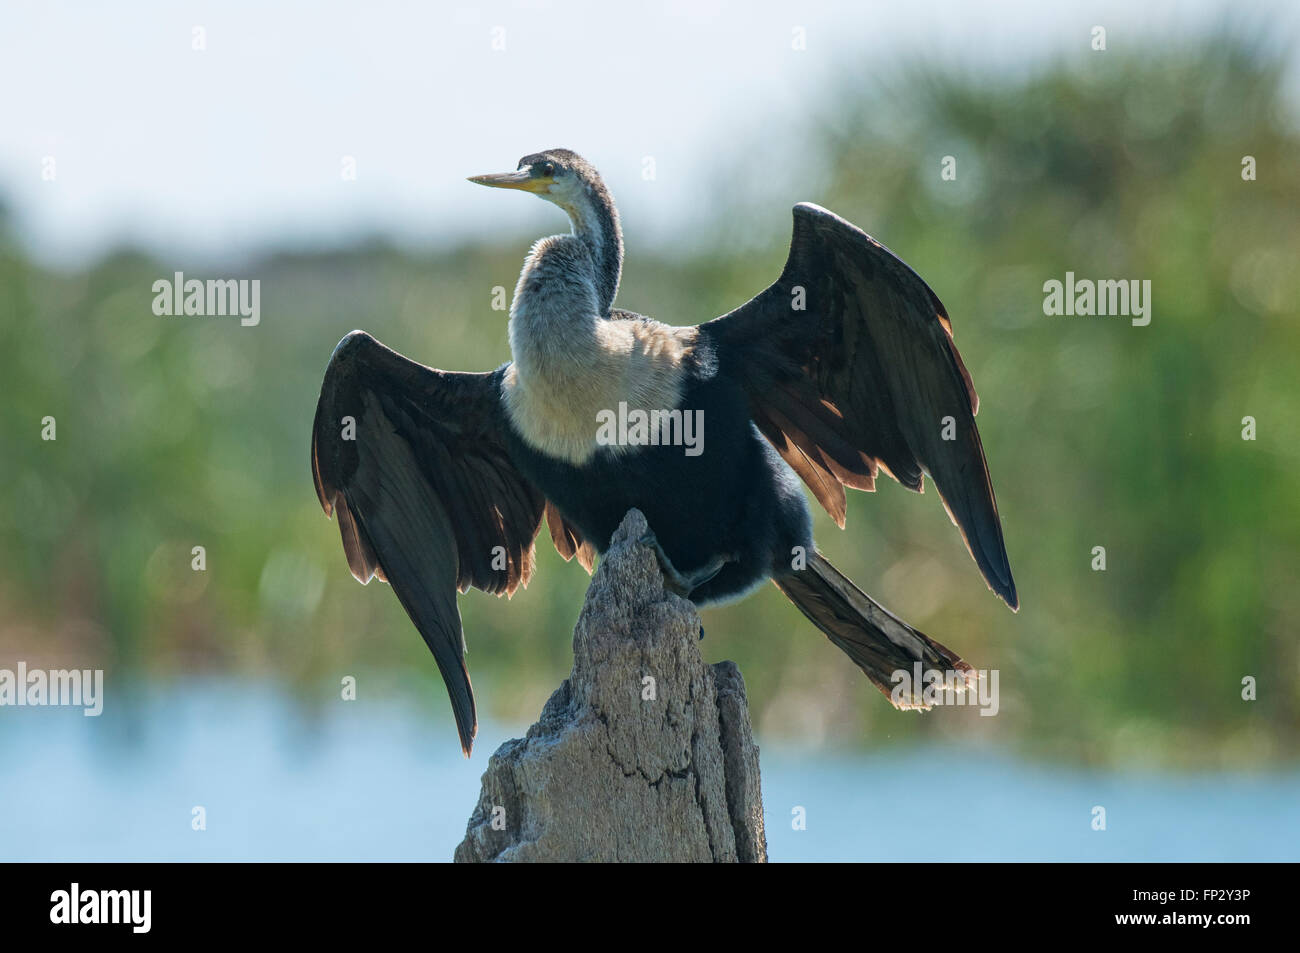 Female anhinga or snake bird perched on snag drying wings, - Stock Image